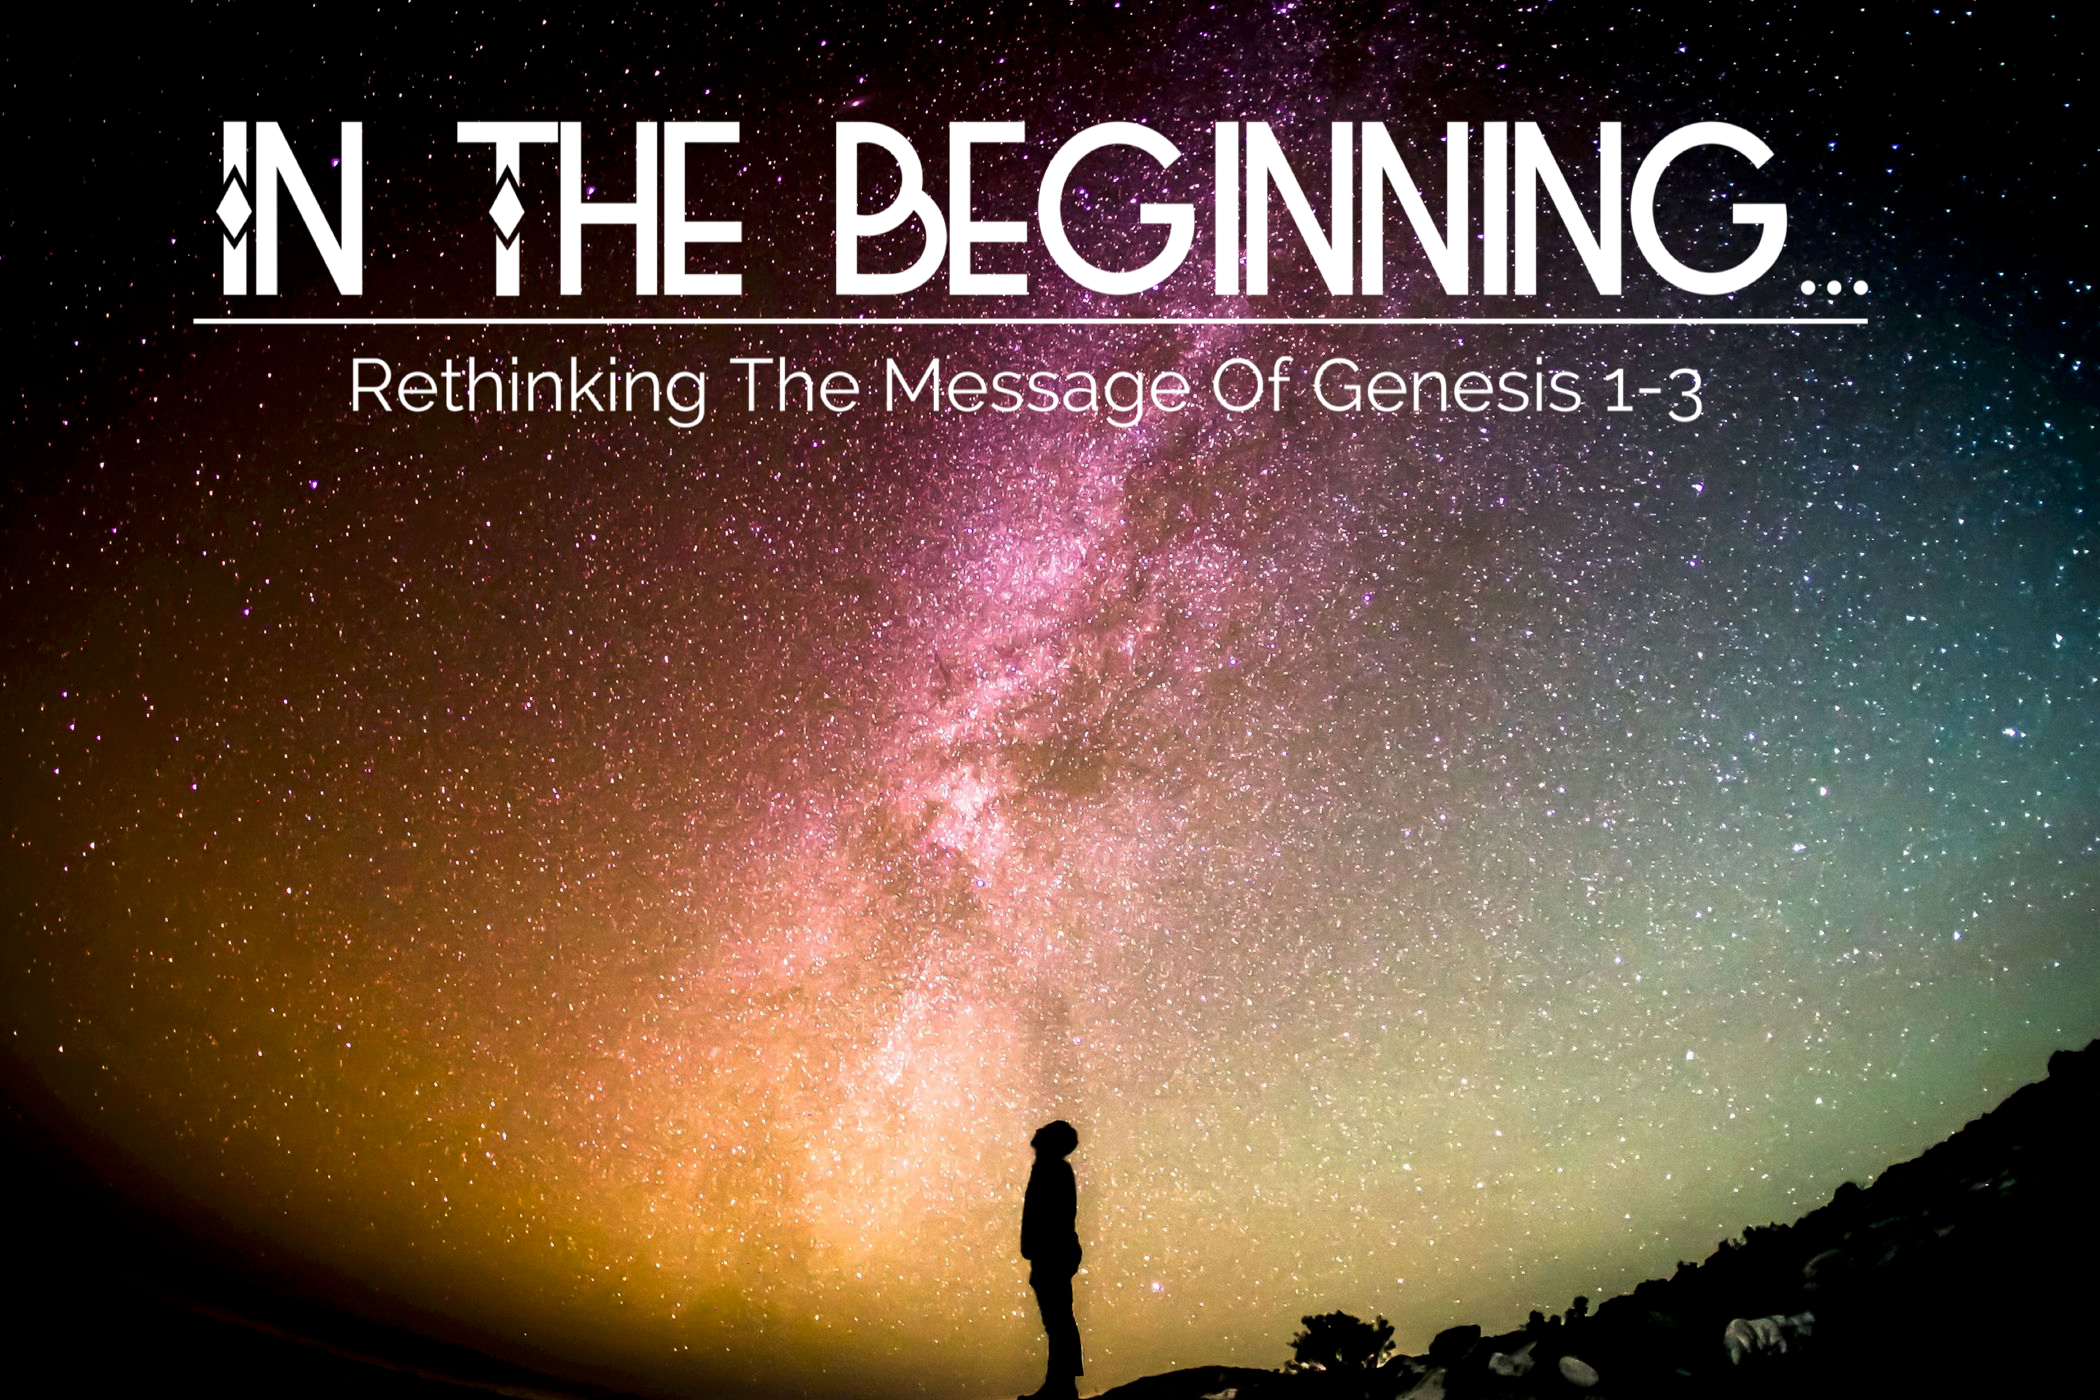 A new look at these familiar chapters of the first book of the Bible. Very few sections of scripture have had more confusion, division, and disagreement than these. We believe they describe an amazing God who is crazy about his creation.